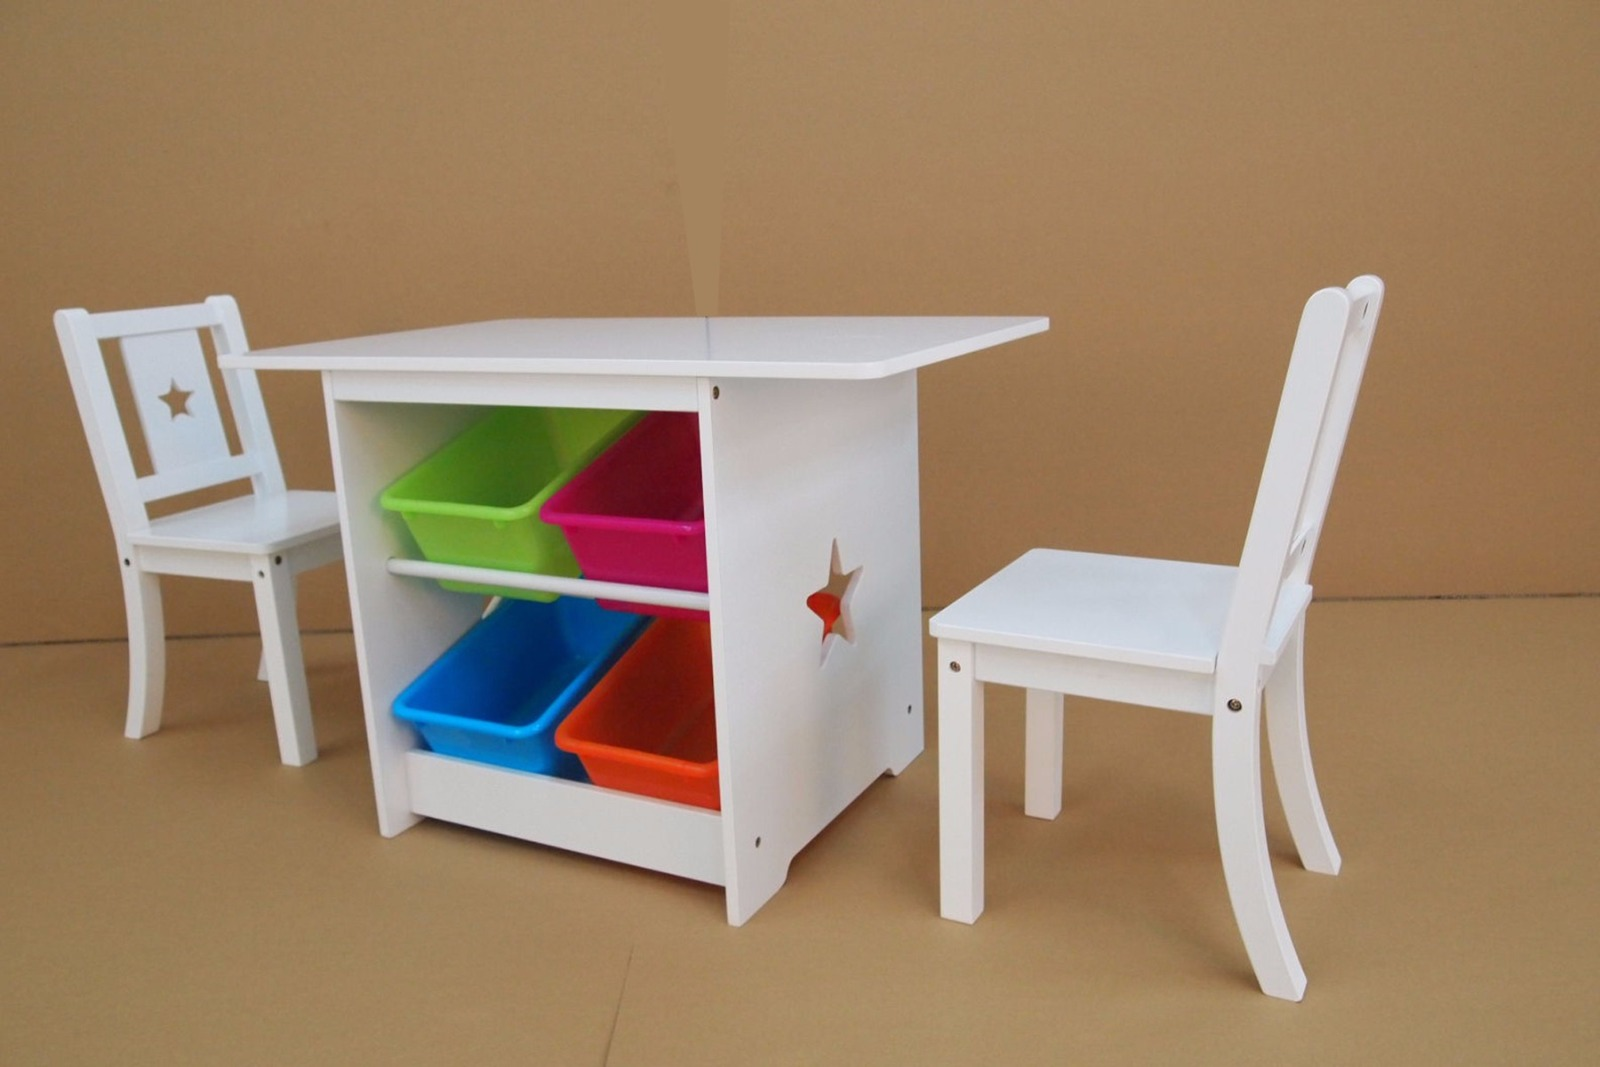 tub chair covers australia bouncy for infants kids tables and chairs set with storage tubs ebay